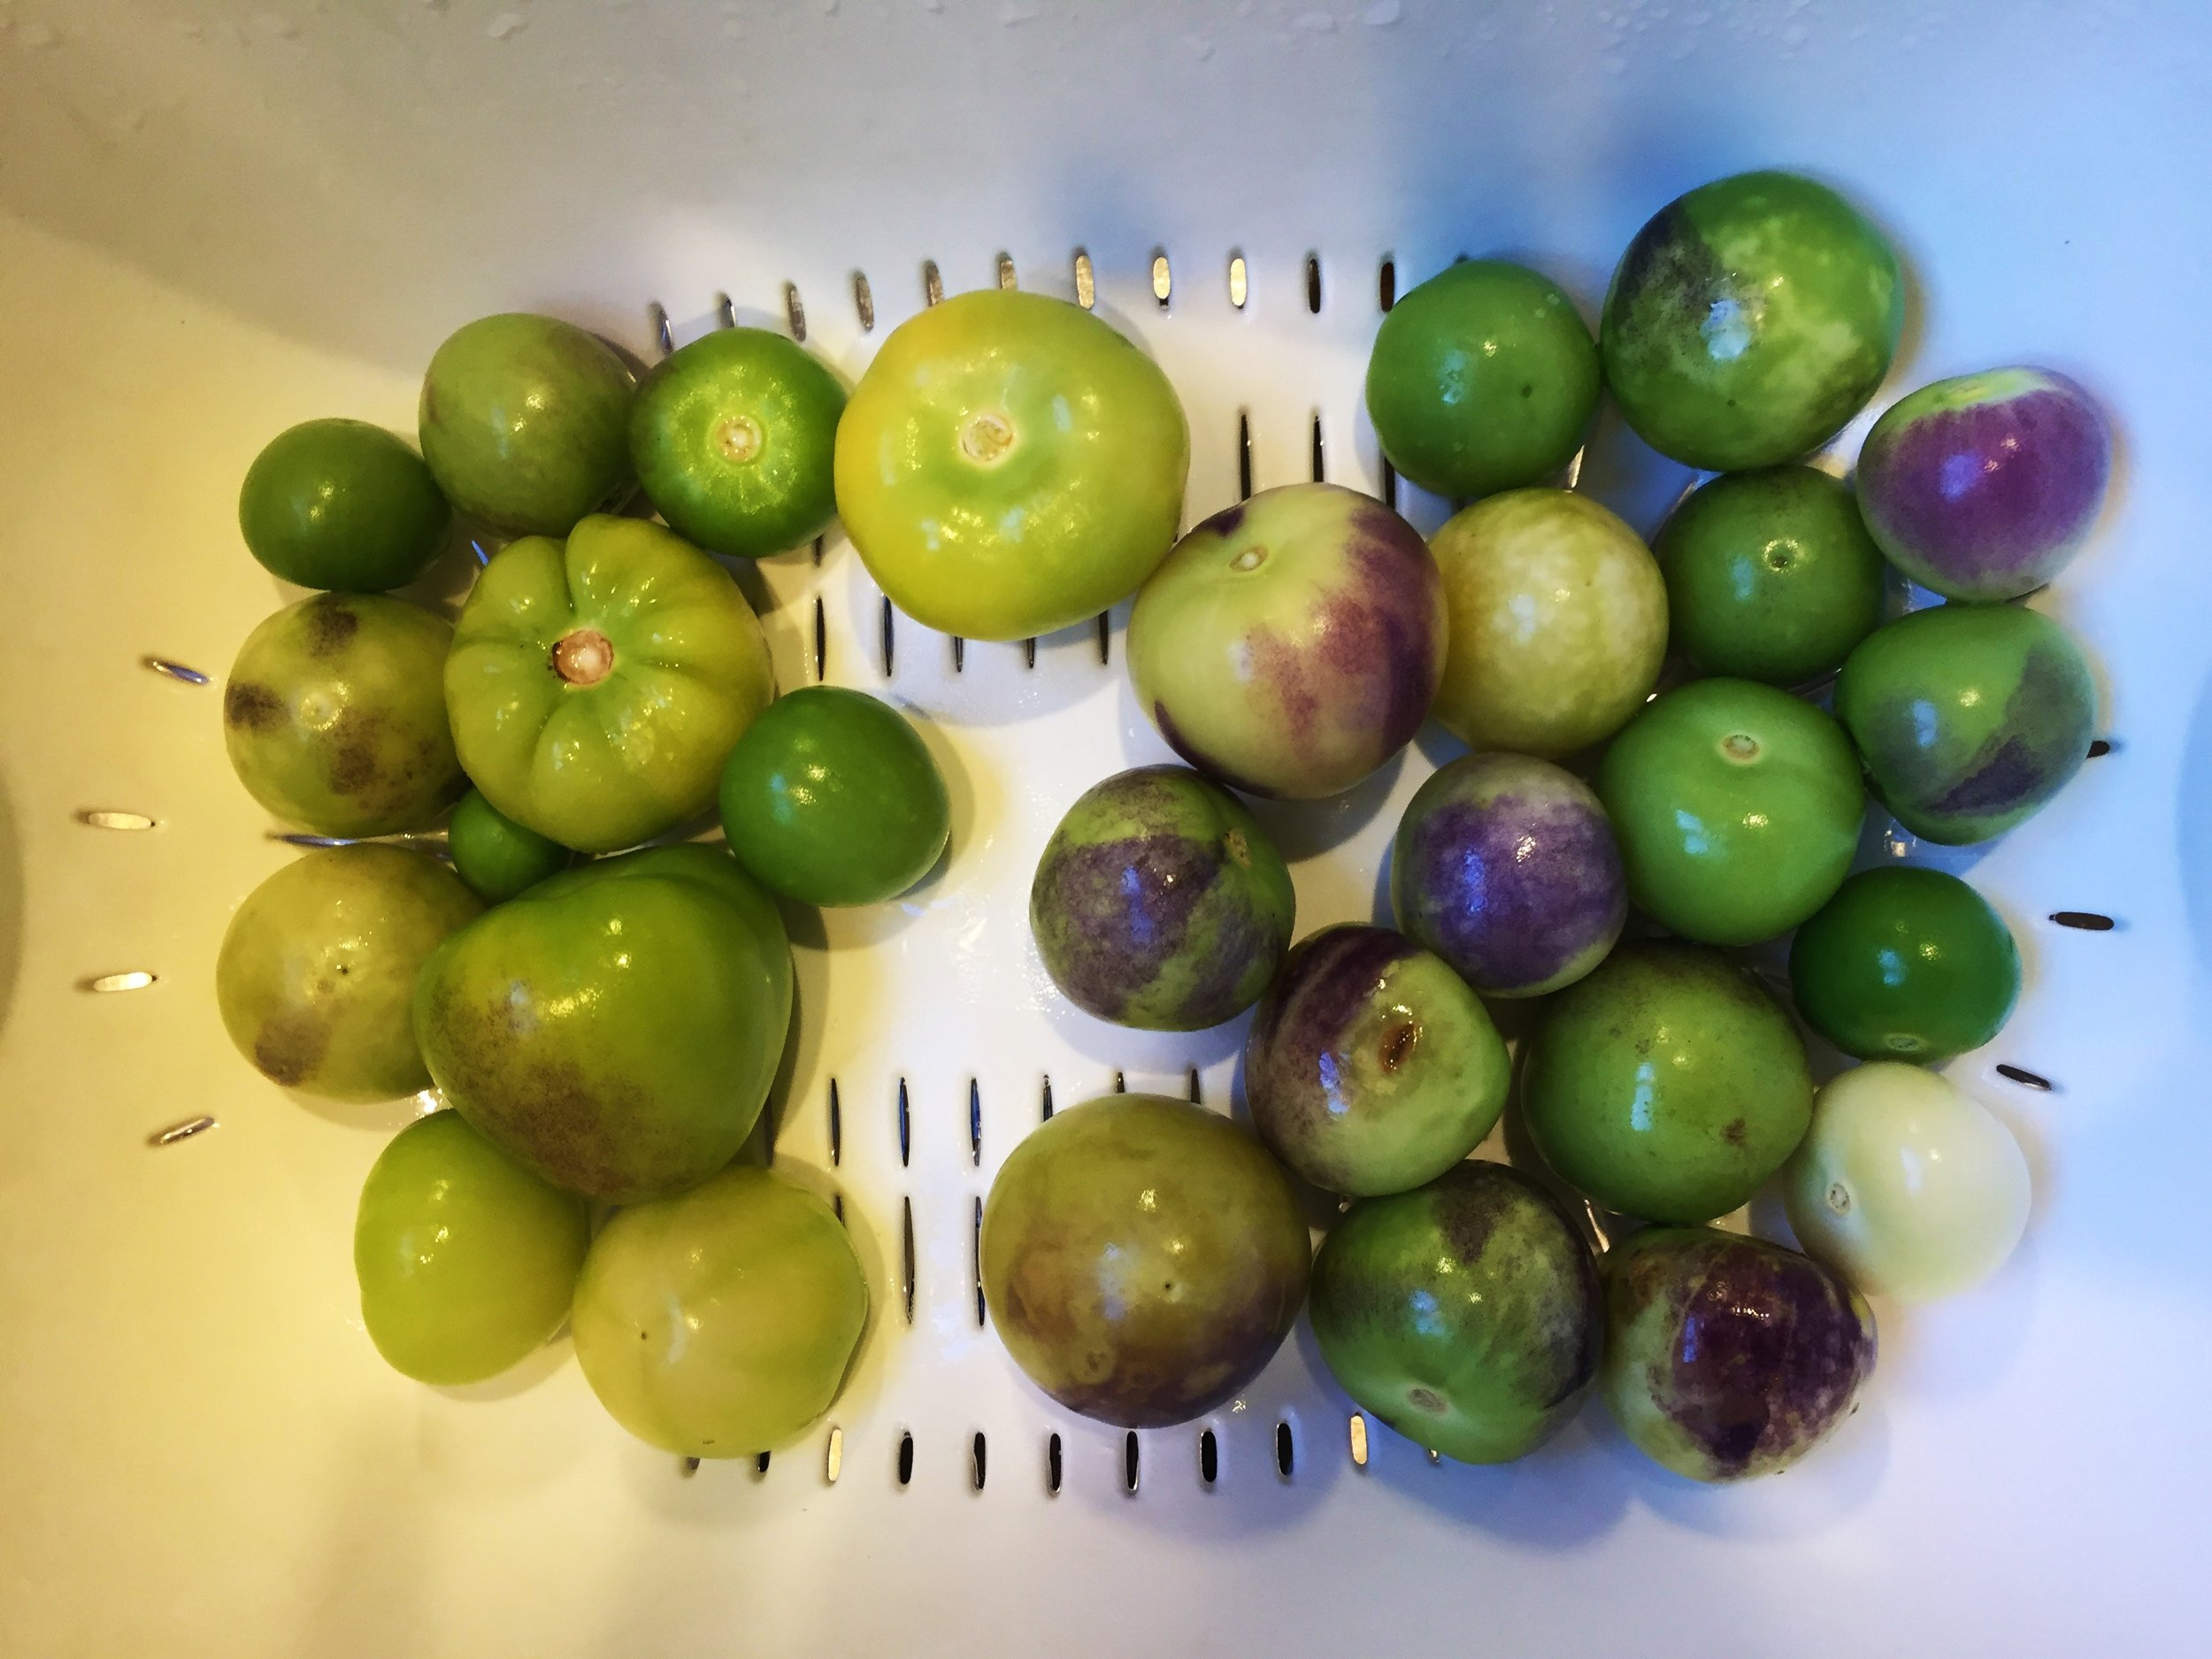 Tomatillos husked, rinsed and ready for action in the Adventure Kitchen.